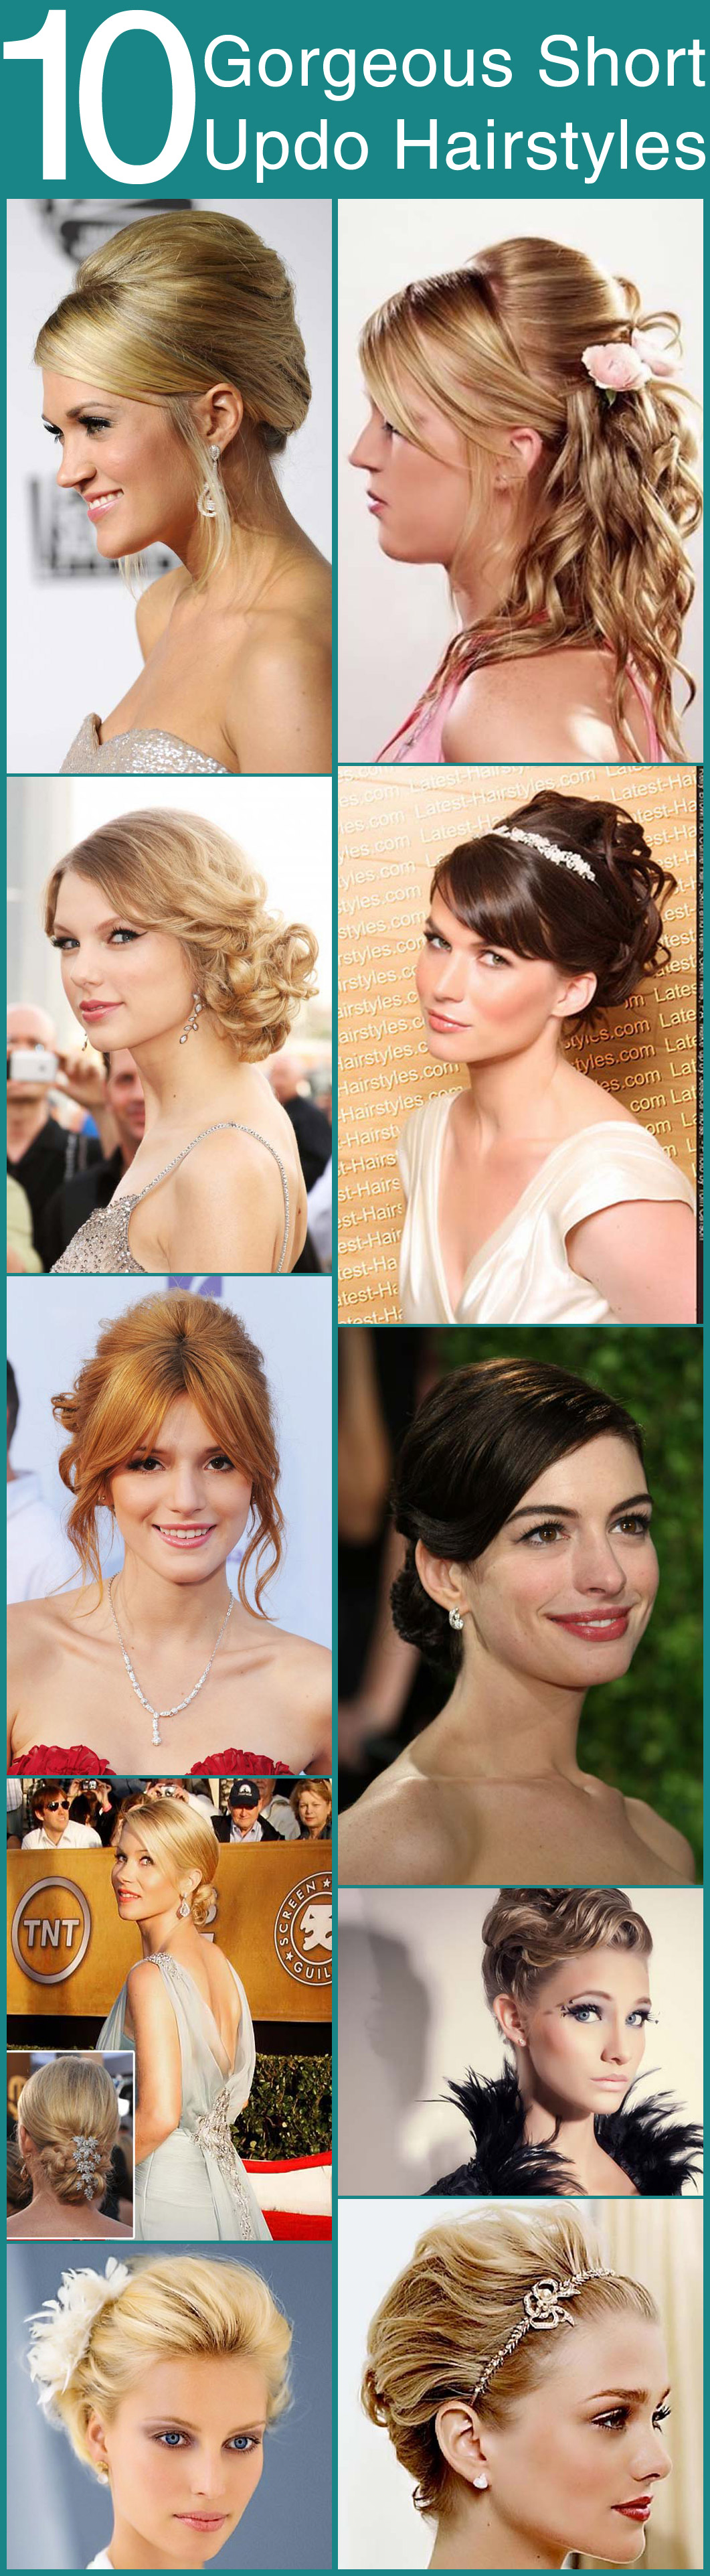 10 Gorgeous Short Updo Hairstyles